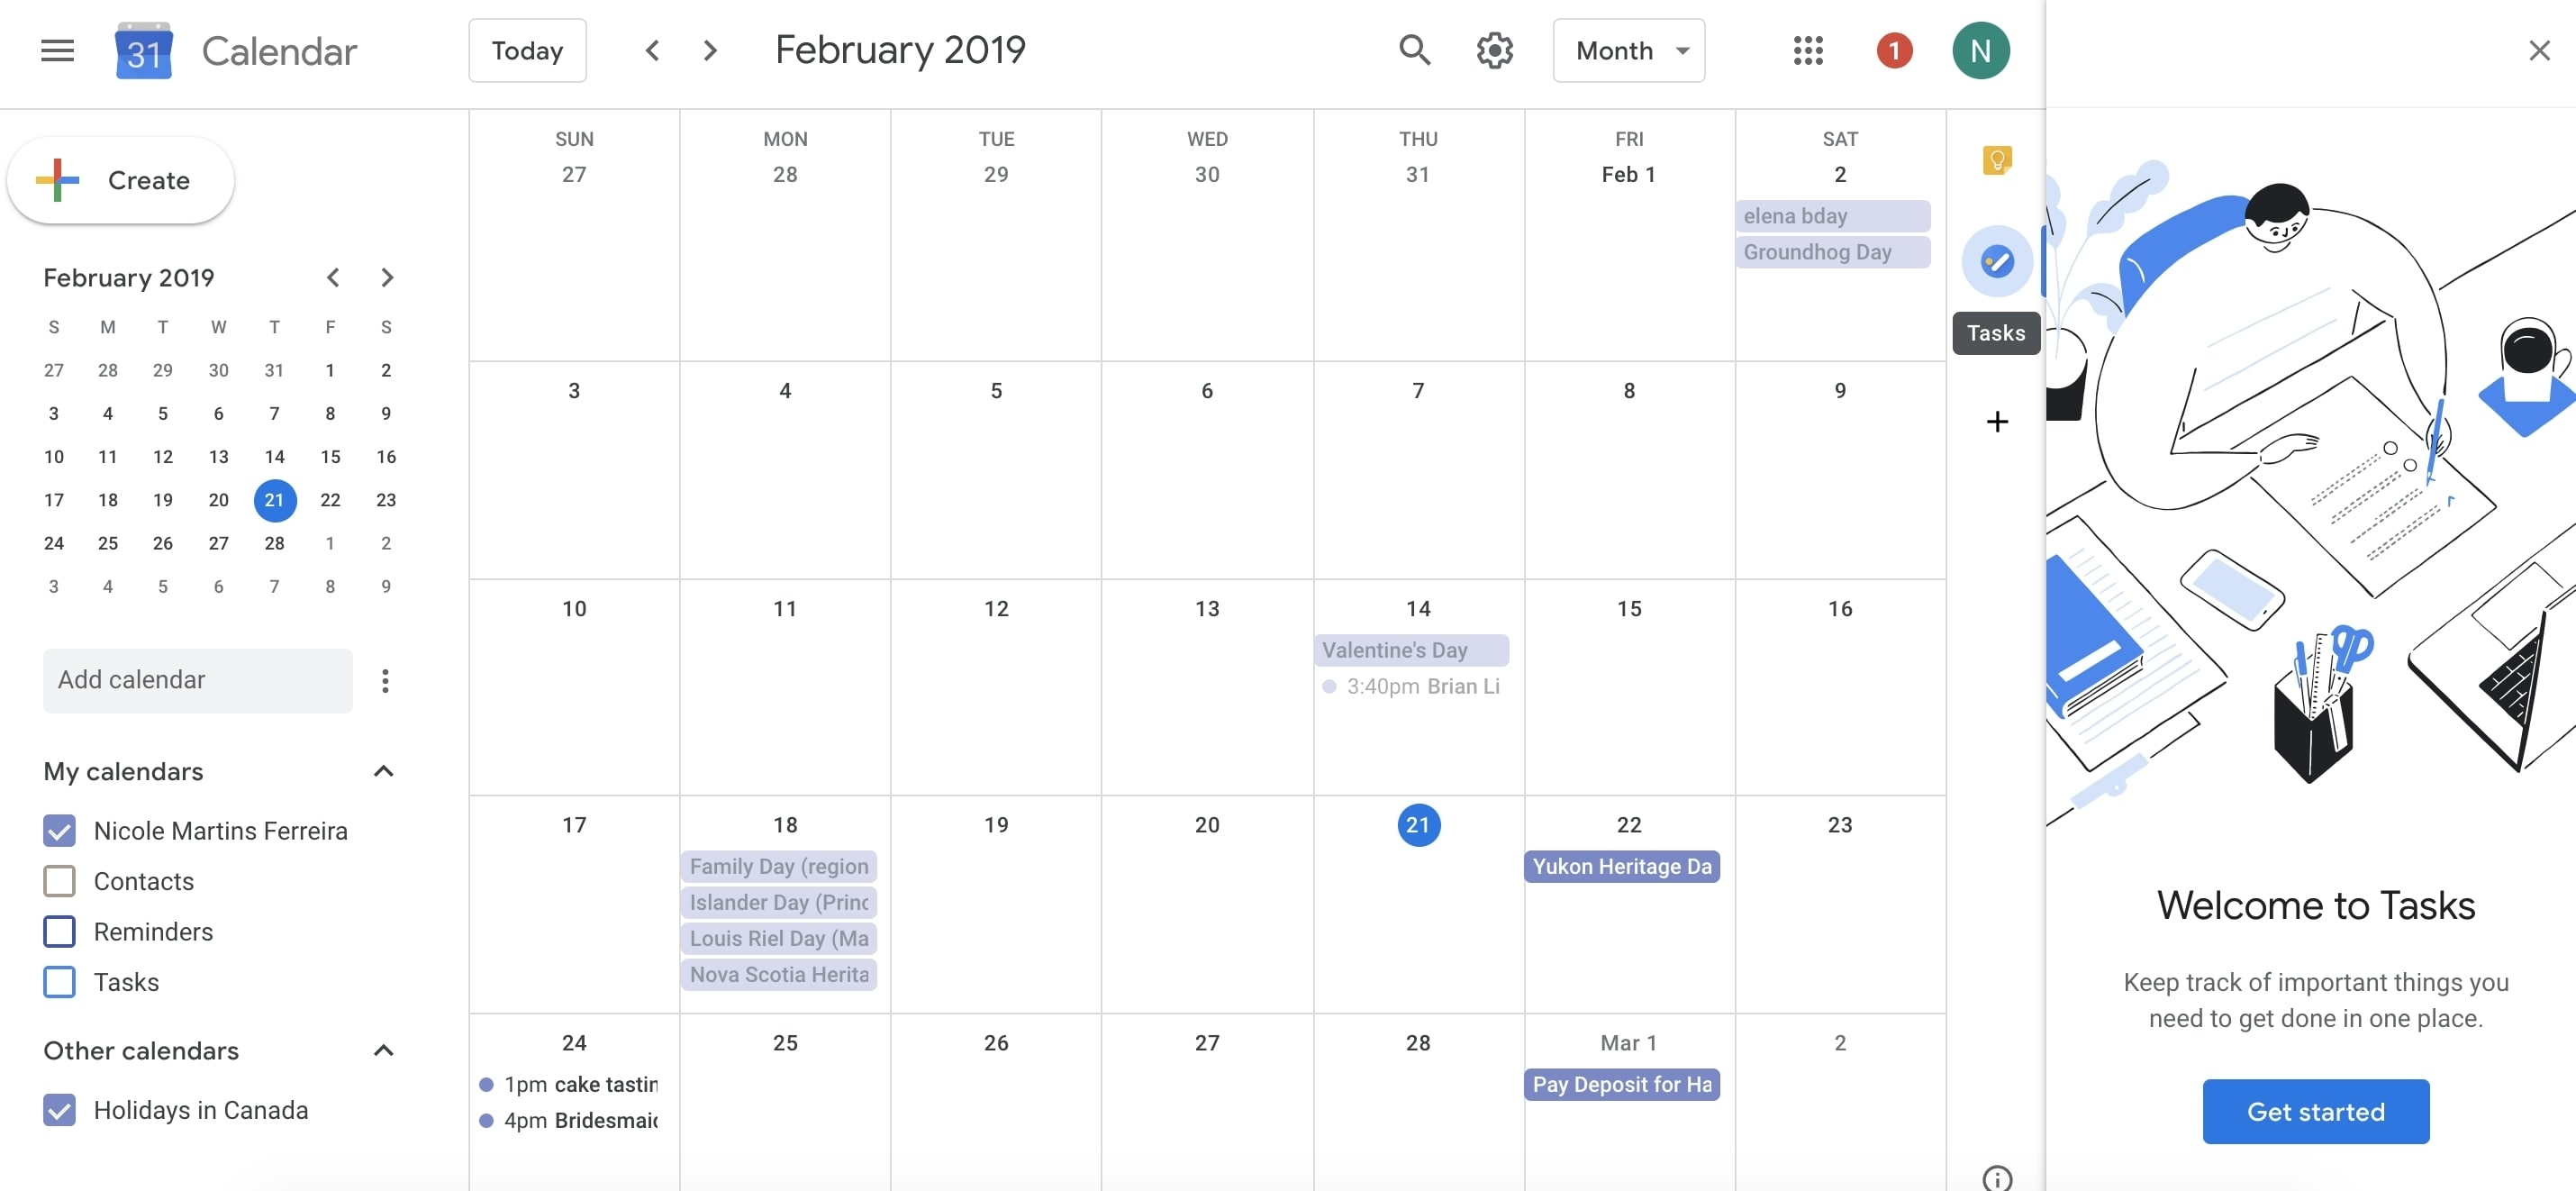 20 Ways To Use Google Calendar To Maximize Your Day In 2020